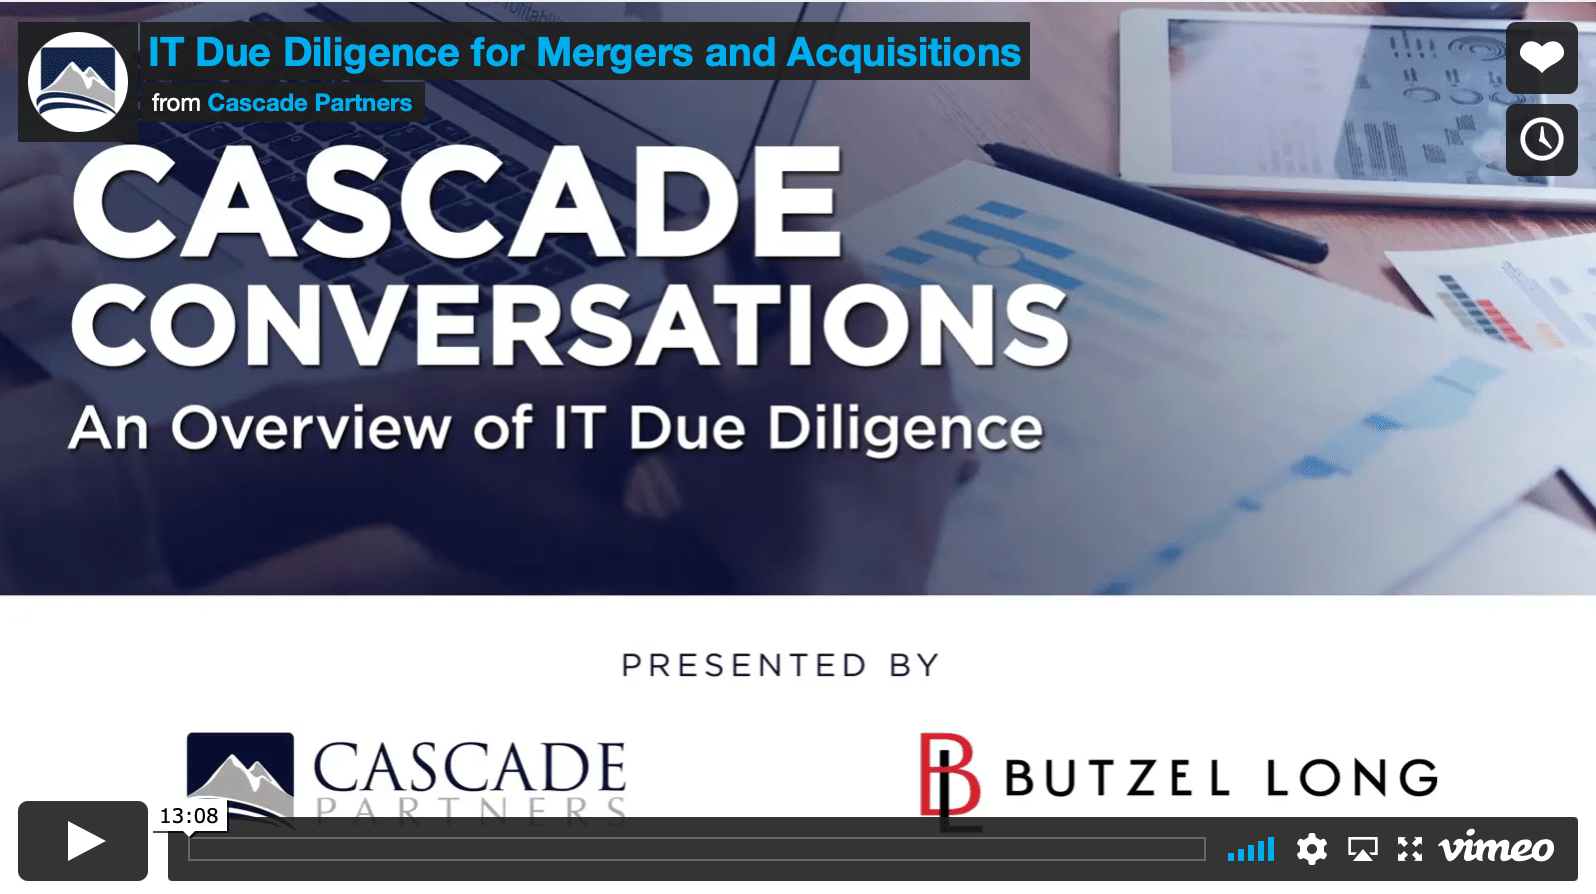 IT due diligence for mergers and acquisitions